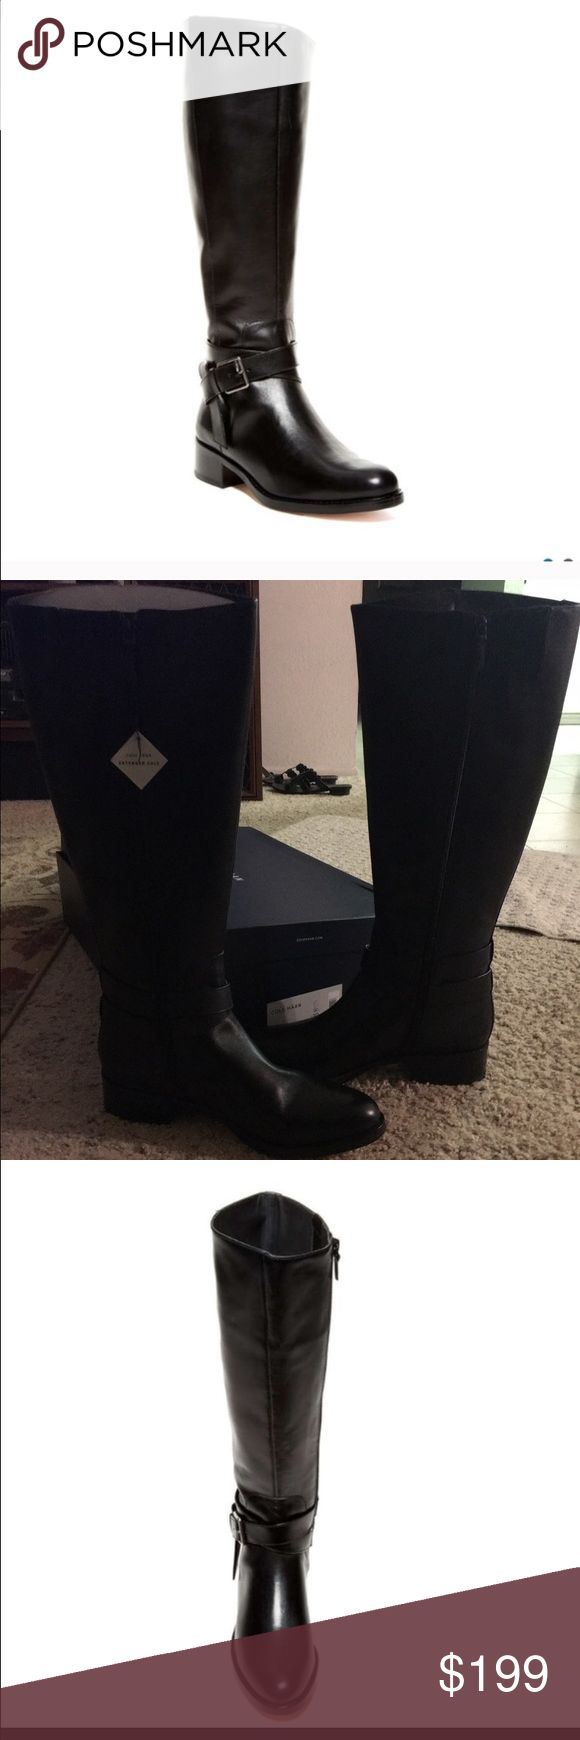 Cole Haan briarcliff leather boots ( tall calf) Tall girls- this is the boot for you💗. This style has an extended calf height, not width. Leather upper and sole. 15 1/2 inches at widest opening. Heel is 1 6/8 inches. Measurement from ground to top of boot is 18 inches. This is a great style for tall and long-legged girls. 🎁 Ask and I will drop 10% after you 'like' it, for this holiday weekend. Cole Haan Shoes